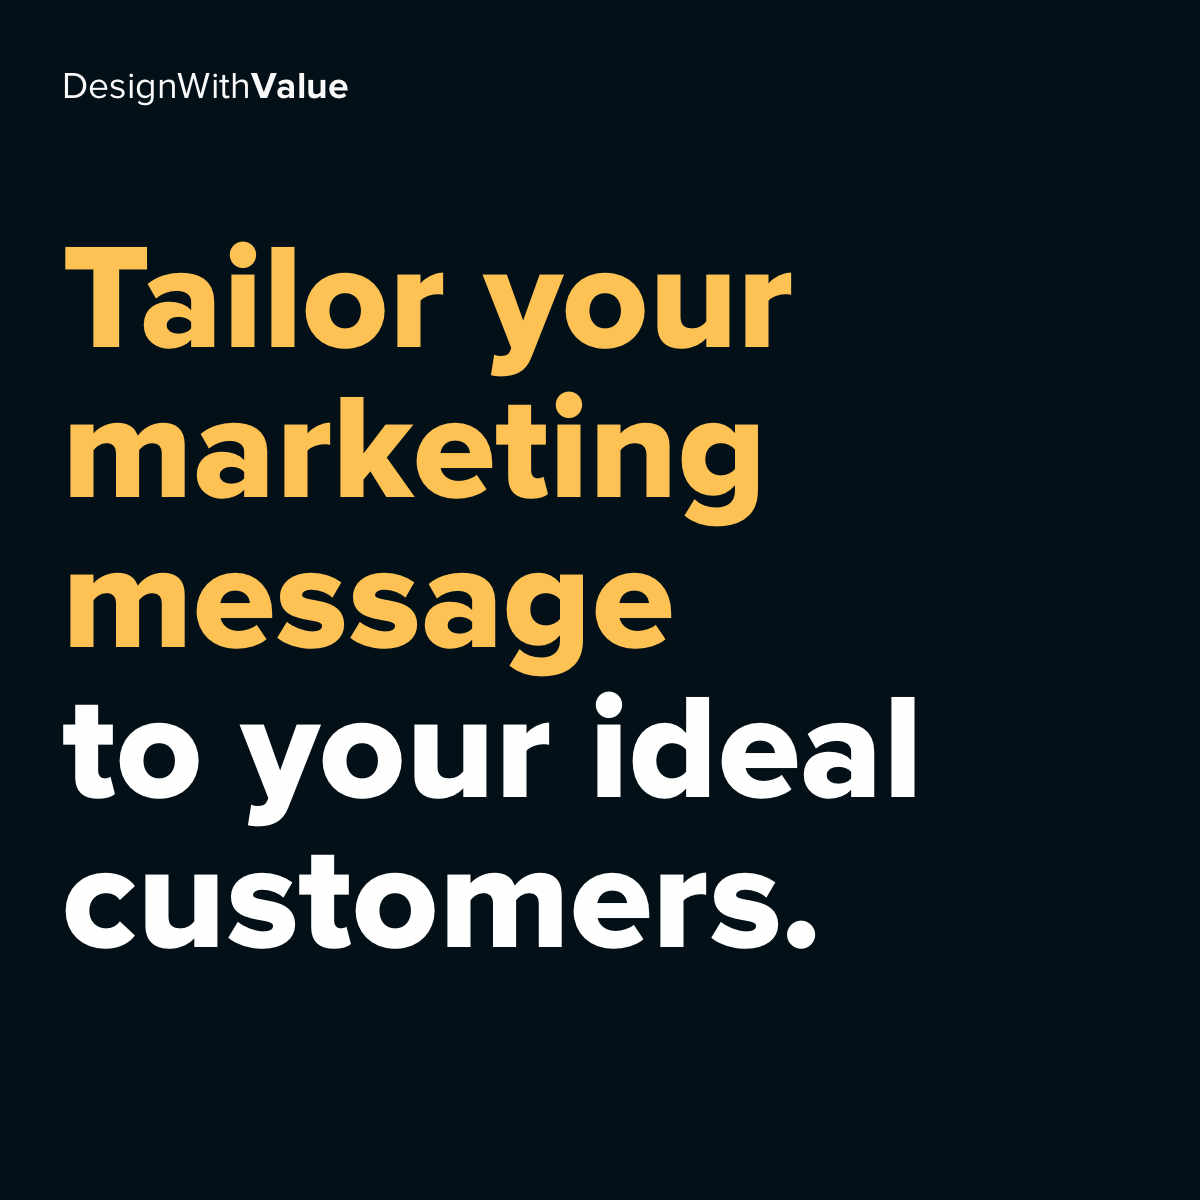 Tailor your marketing message to your ideal customers.